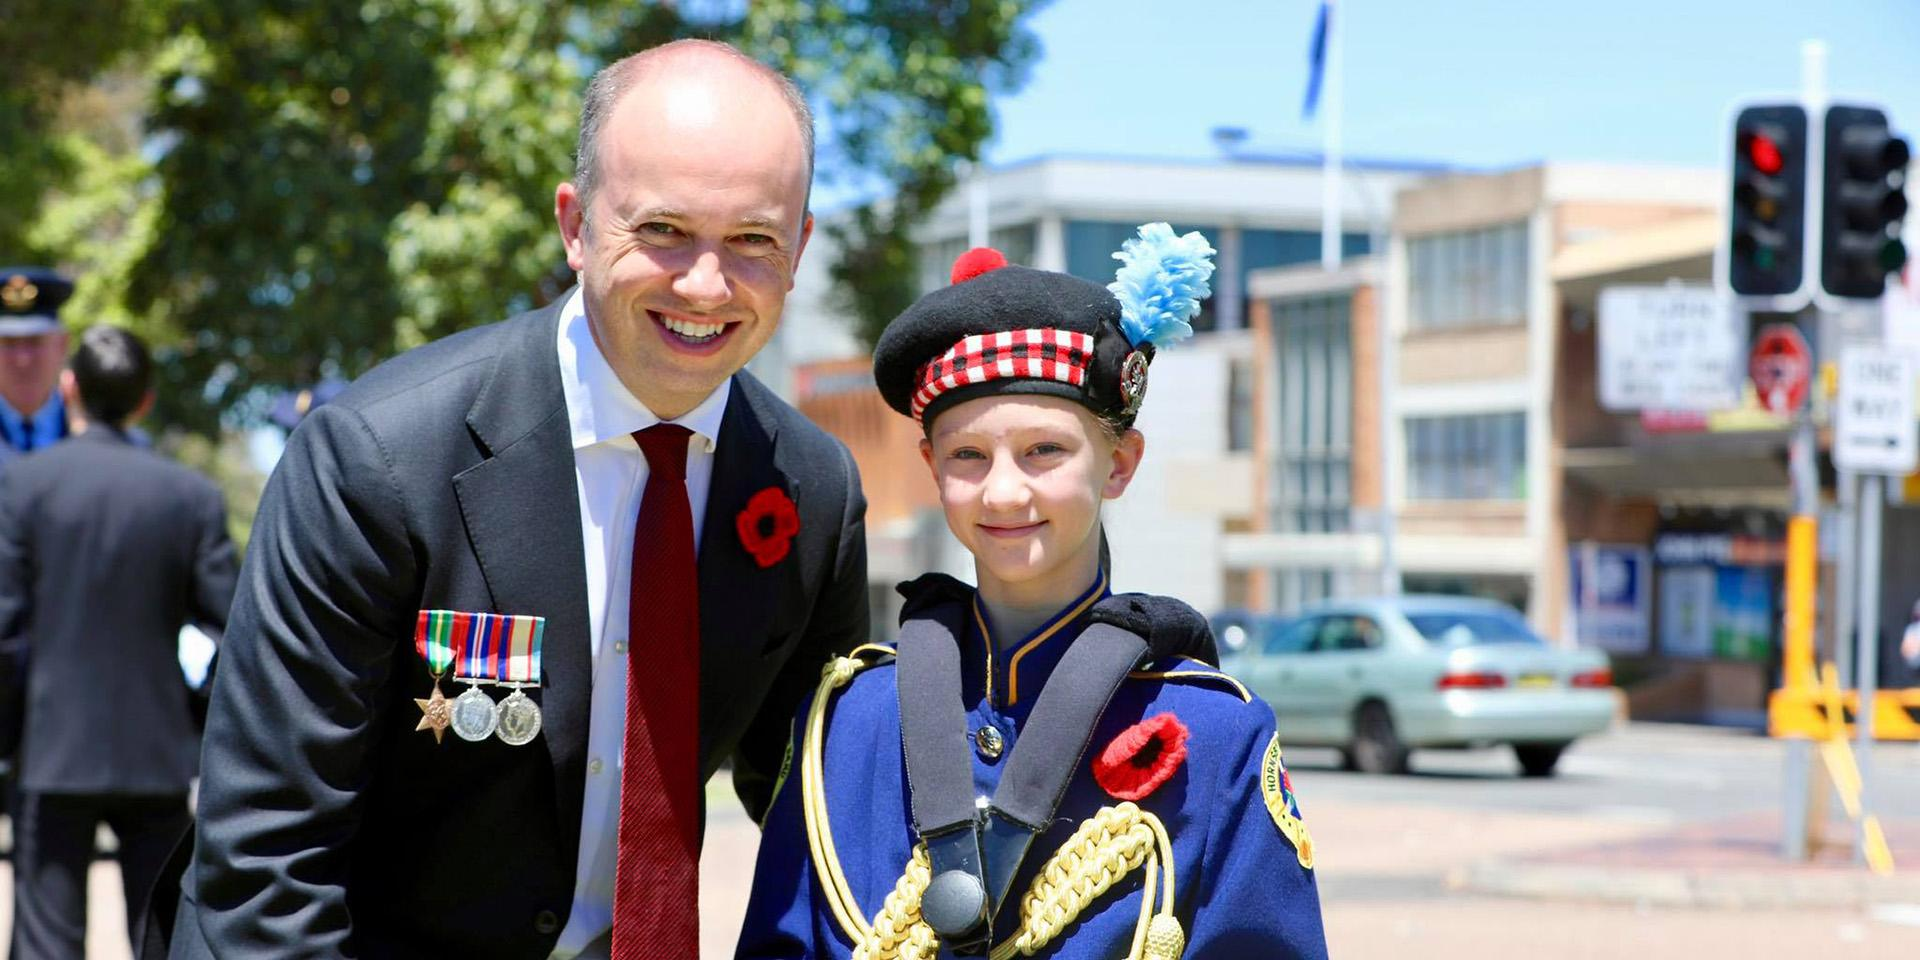 Matt Kean MP attends Remembrance Day